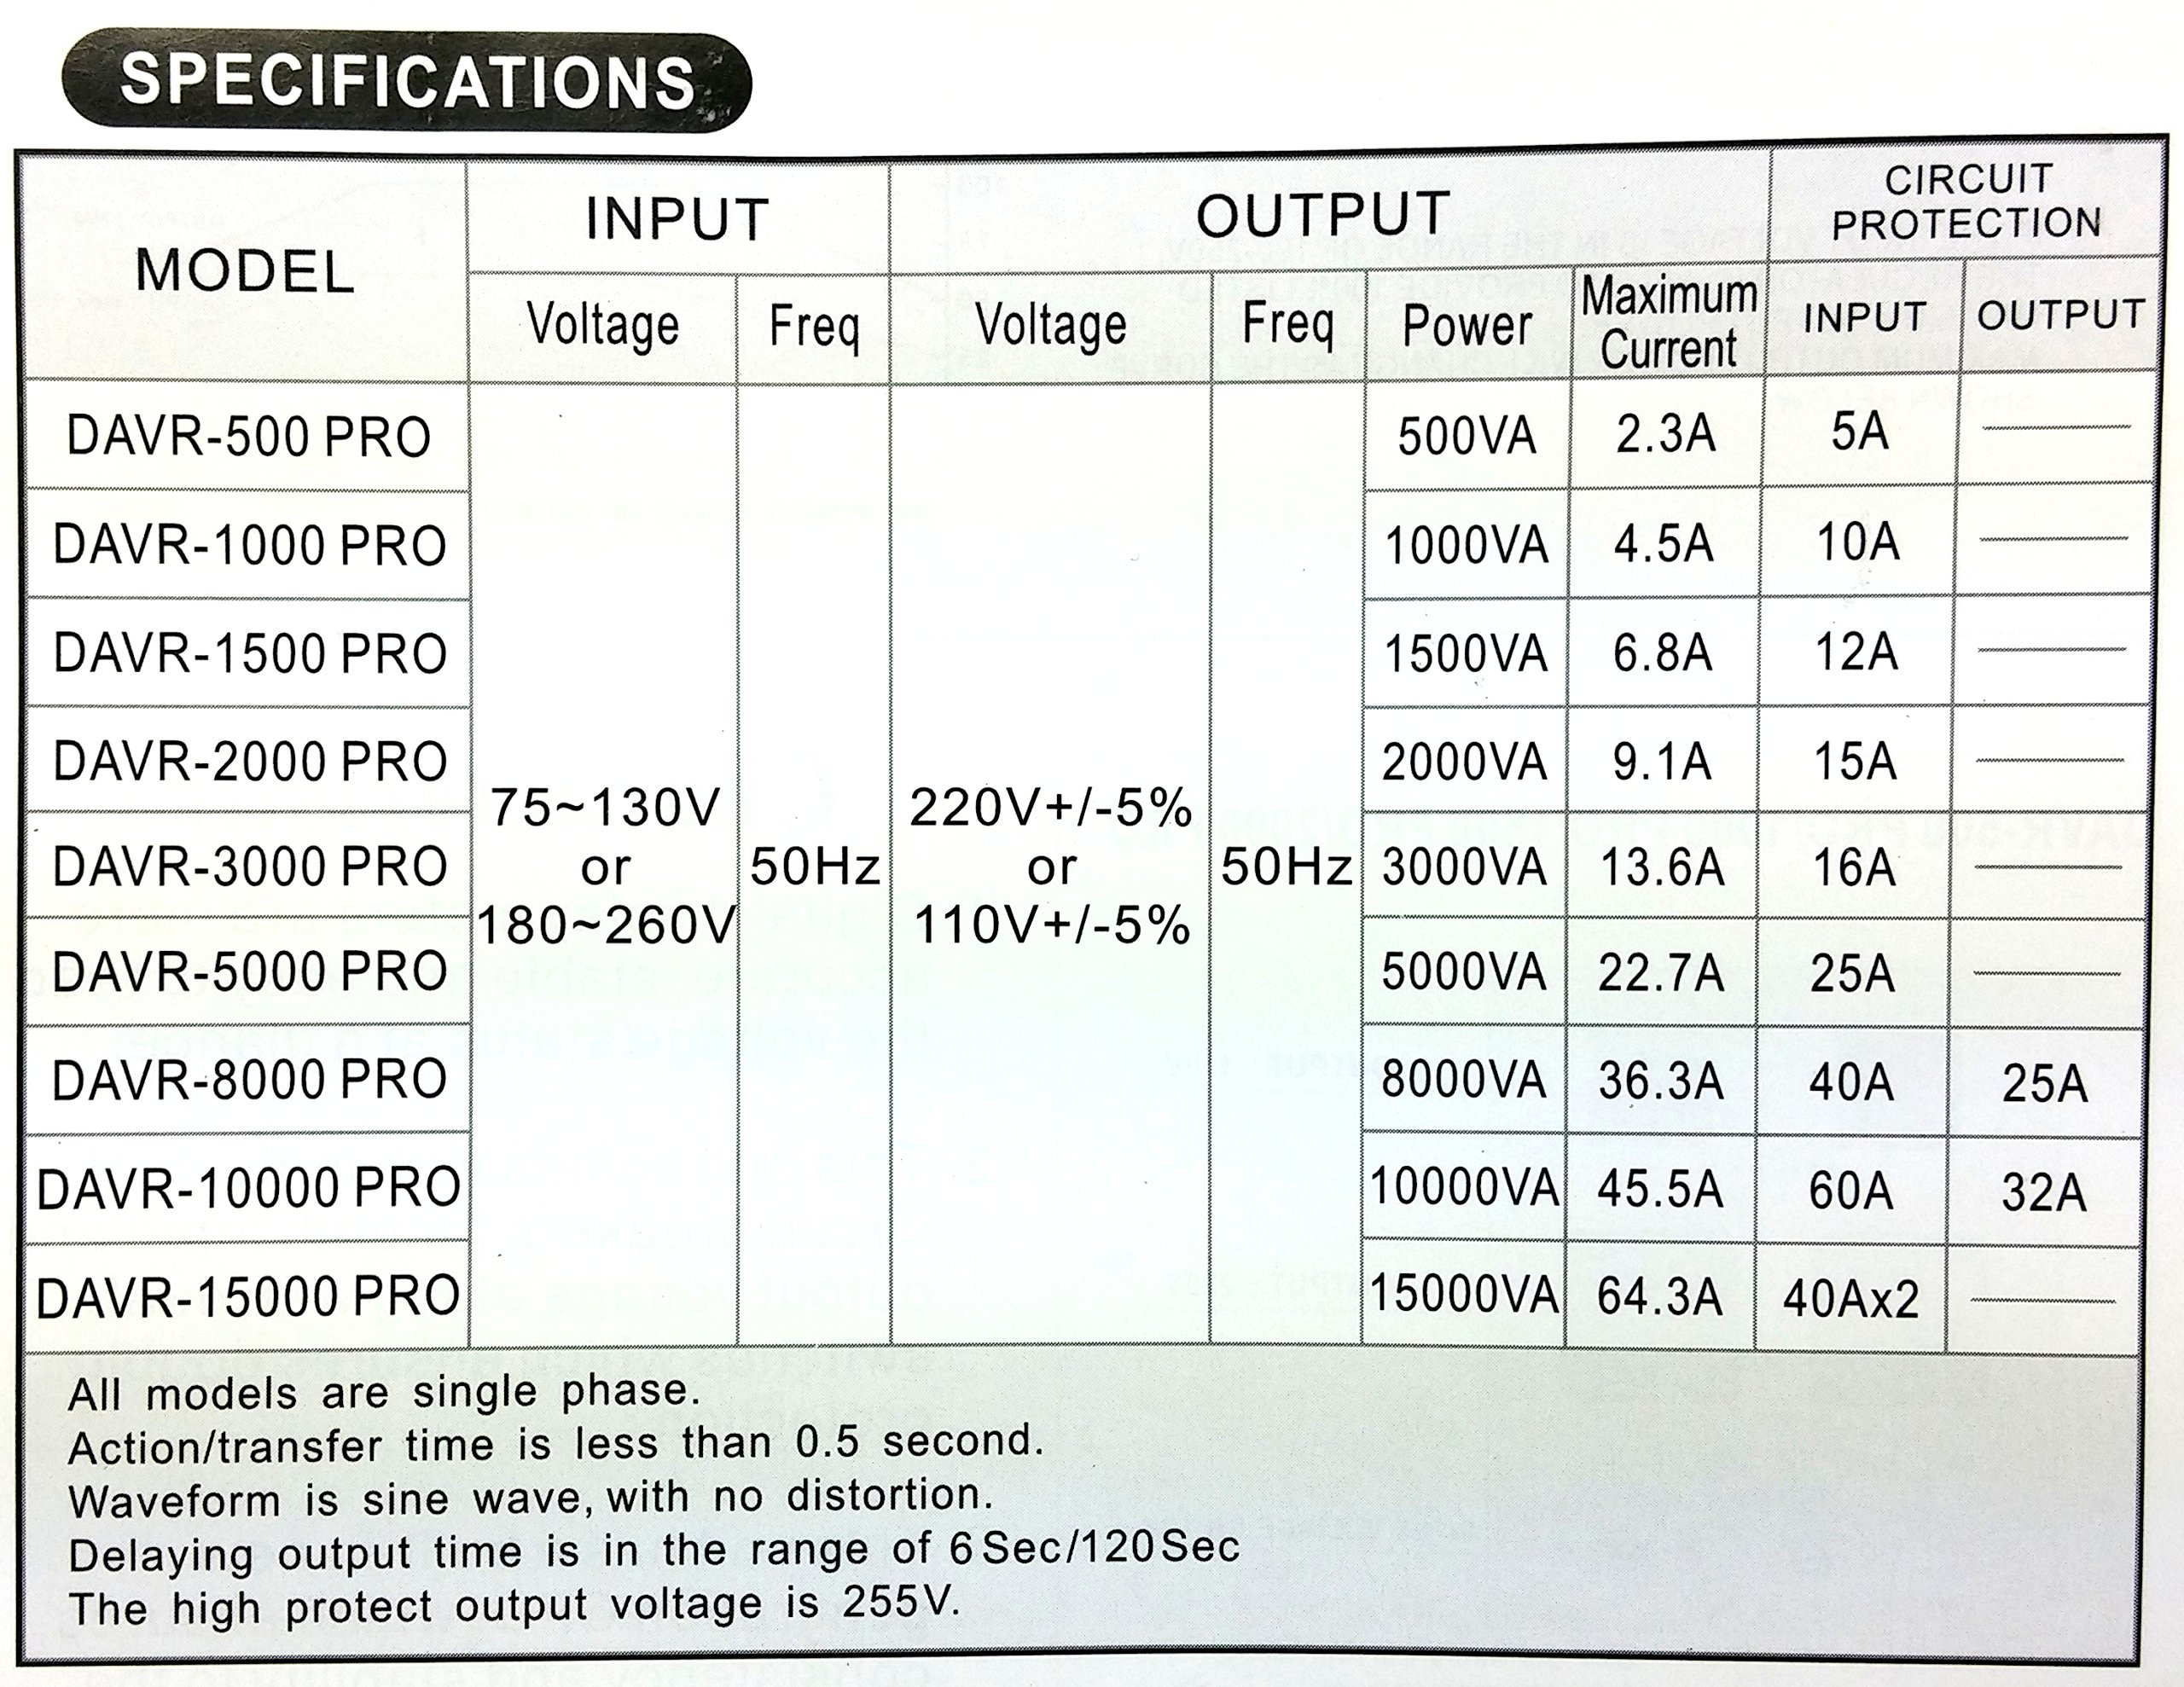 Norstar DAVR-3000 3000 Watt 110/120 to 220/240 or 220/240 to 110/120 Step UP and Down Voltage Transformer and Automatic Voltage Regulator Stabilizer by Norstar (Image #3)